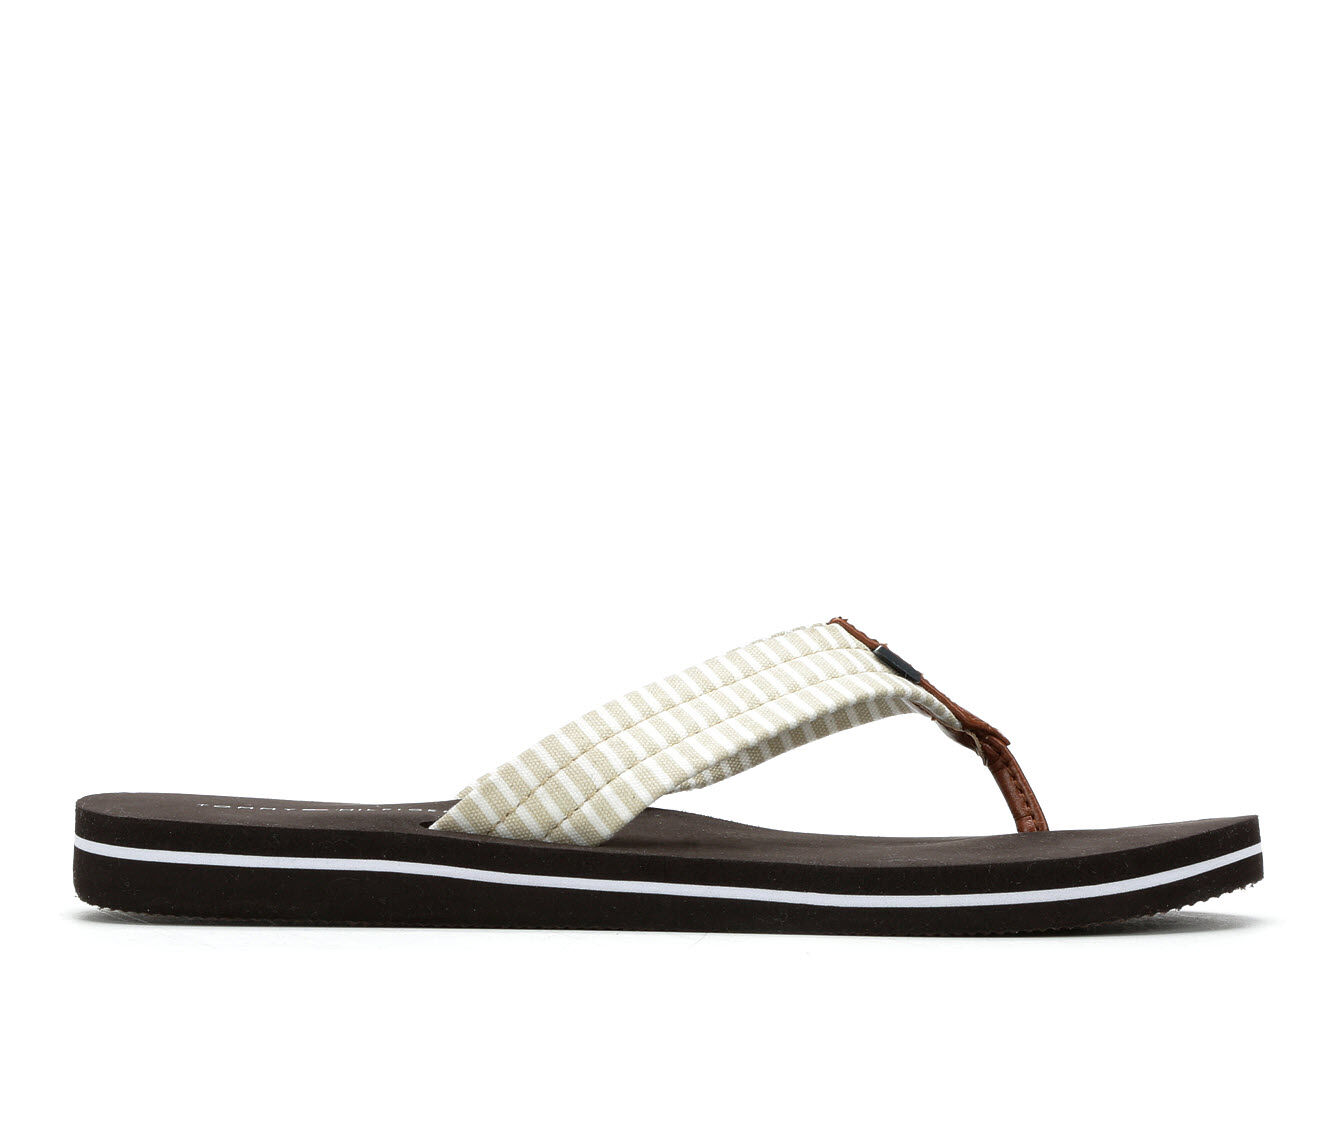 Greate Discount Women's Tommy Hilfiger Craft Sandals Oatmeal Multi